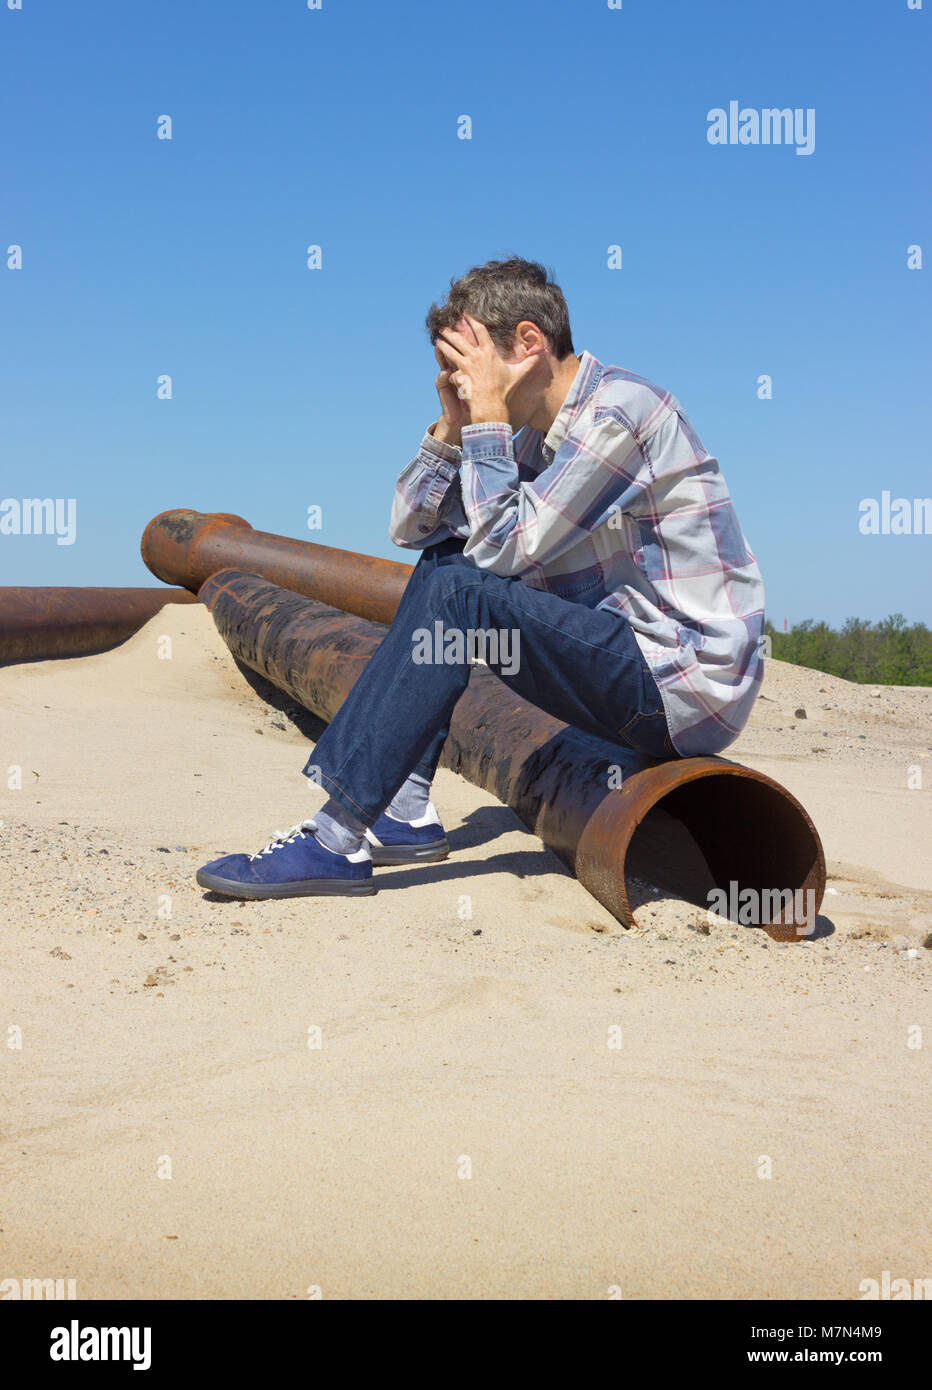 Lonely young man suffering from depression sitting on wasteland - Stock Image